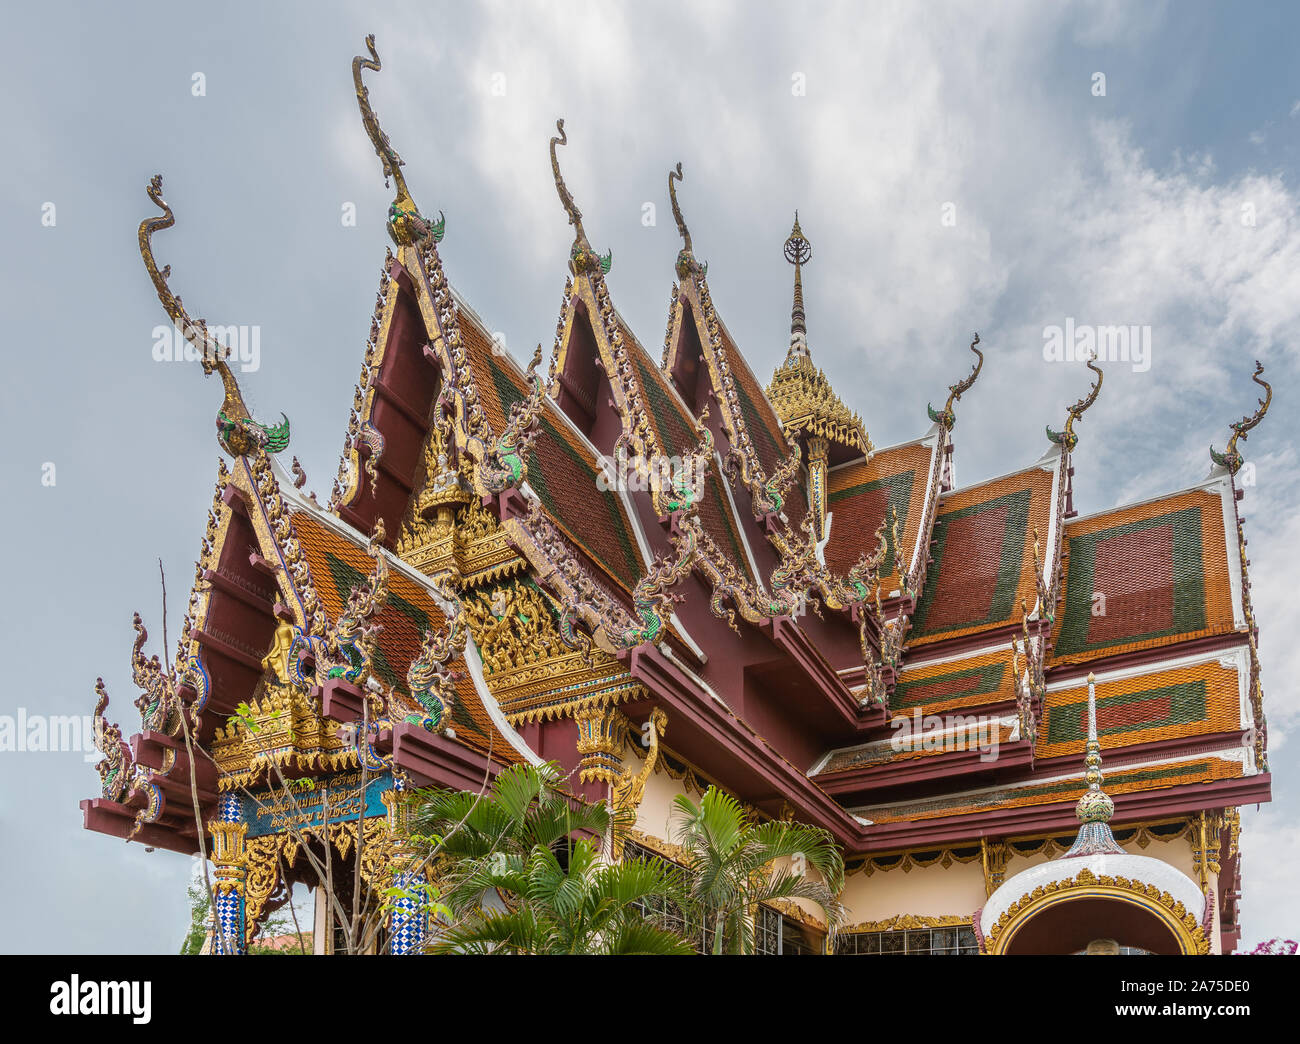 Ko Samui Island, Thailand - March 18, 2019: Wat Laem Suwannaram Chinese Buddhist Temple. Elaborately decorated multi-leveled roof structure with gold, Stock Photo